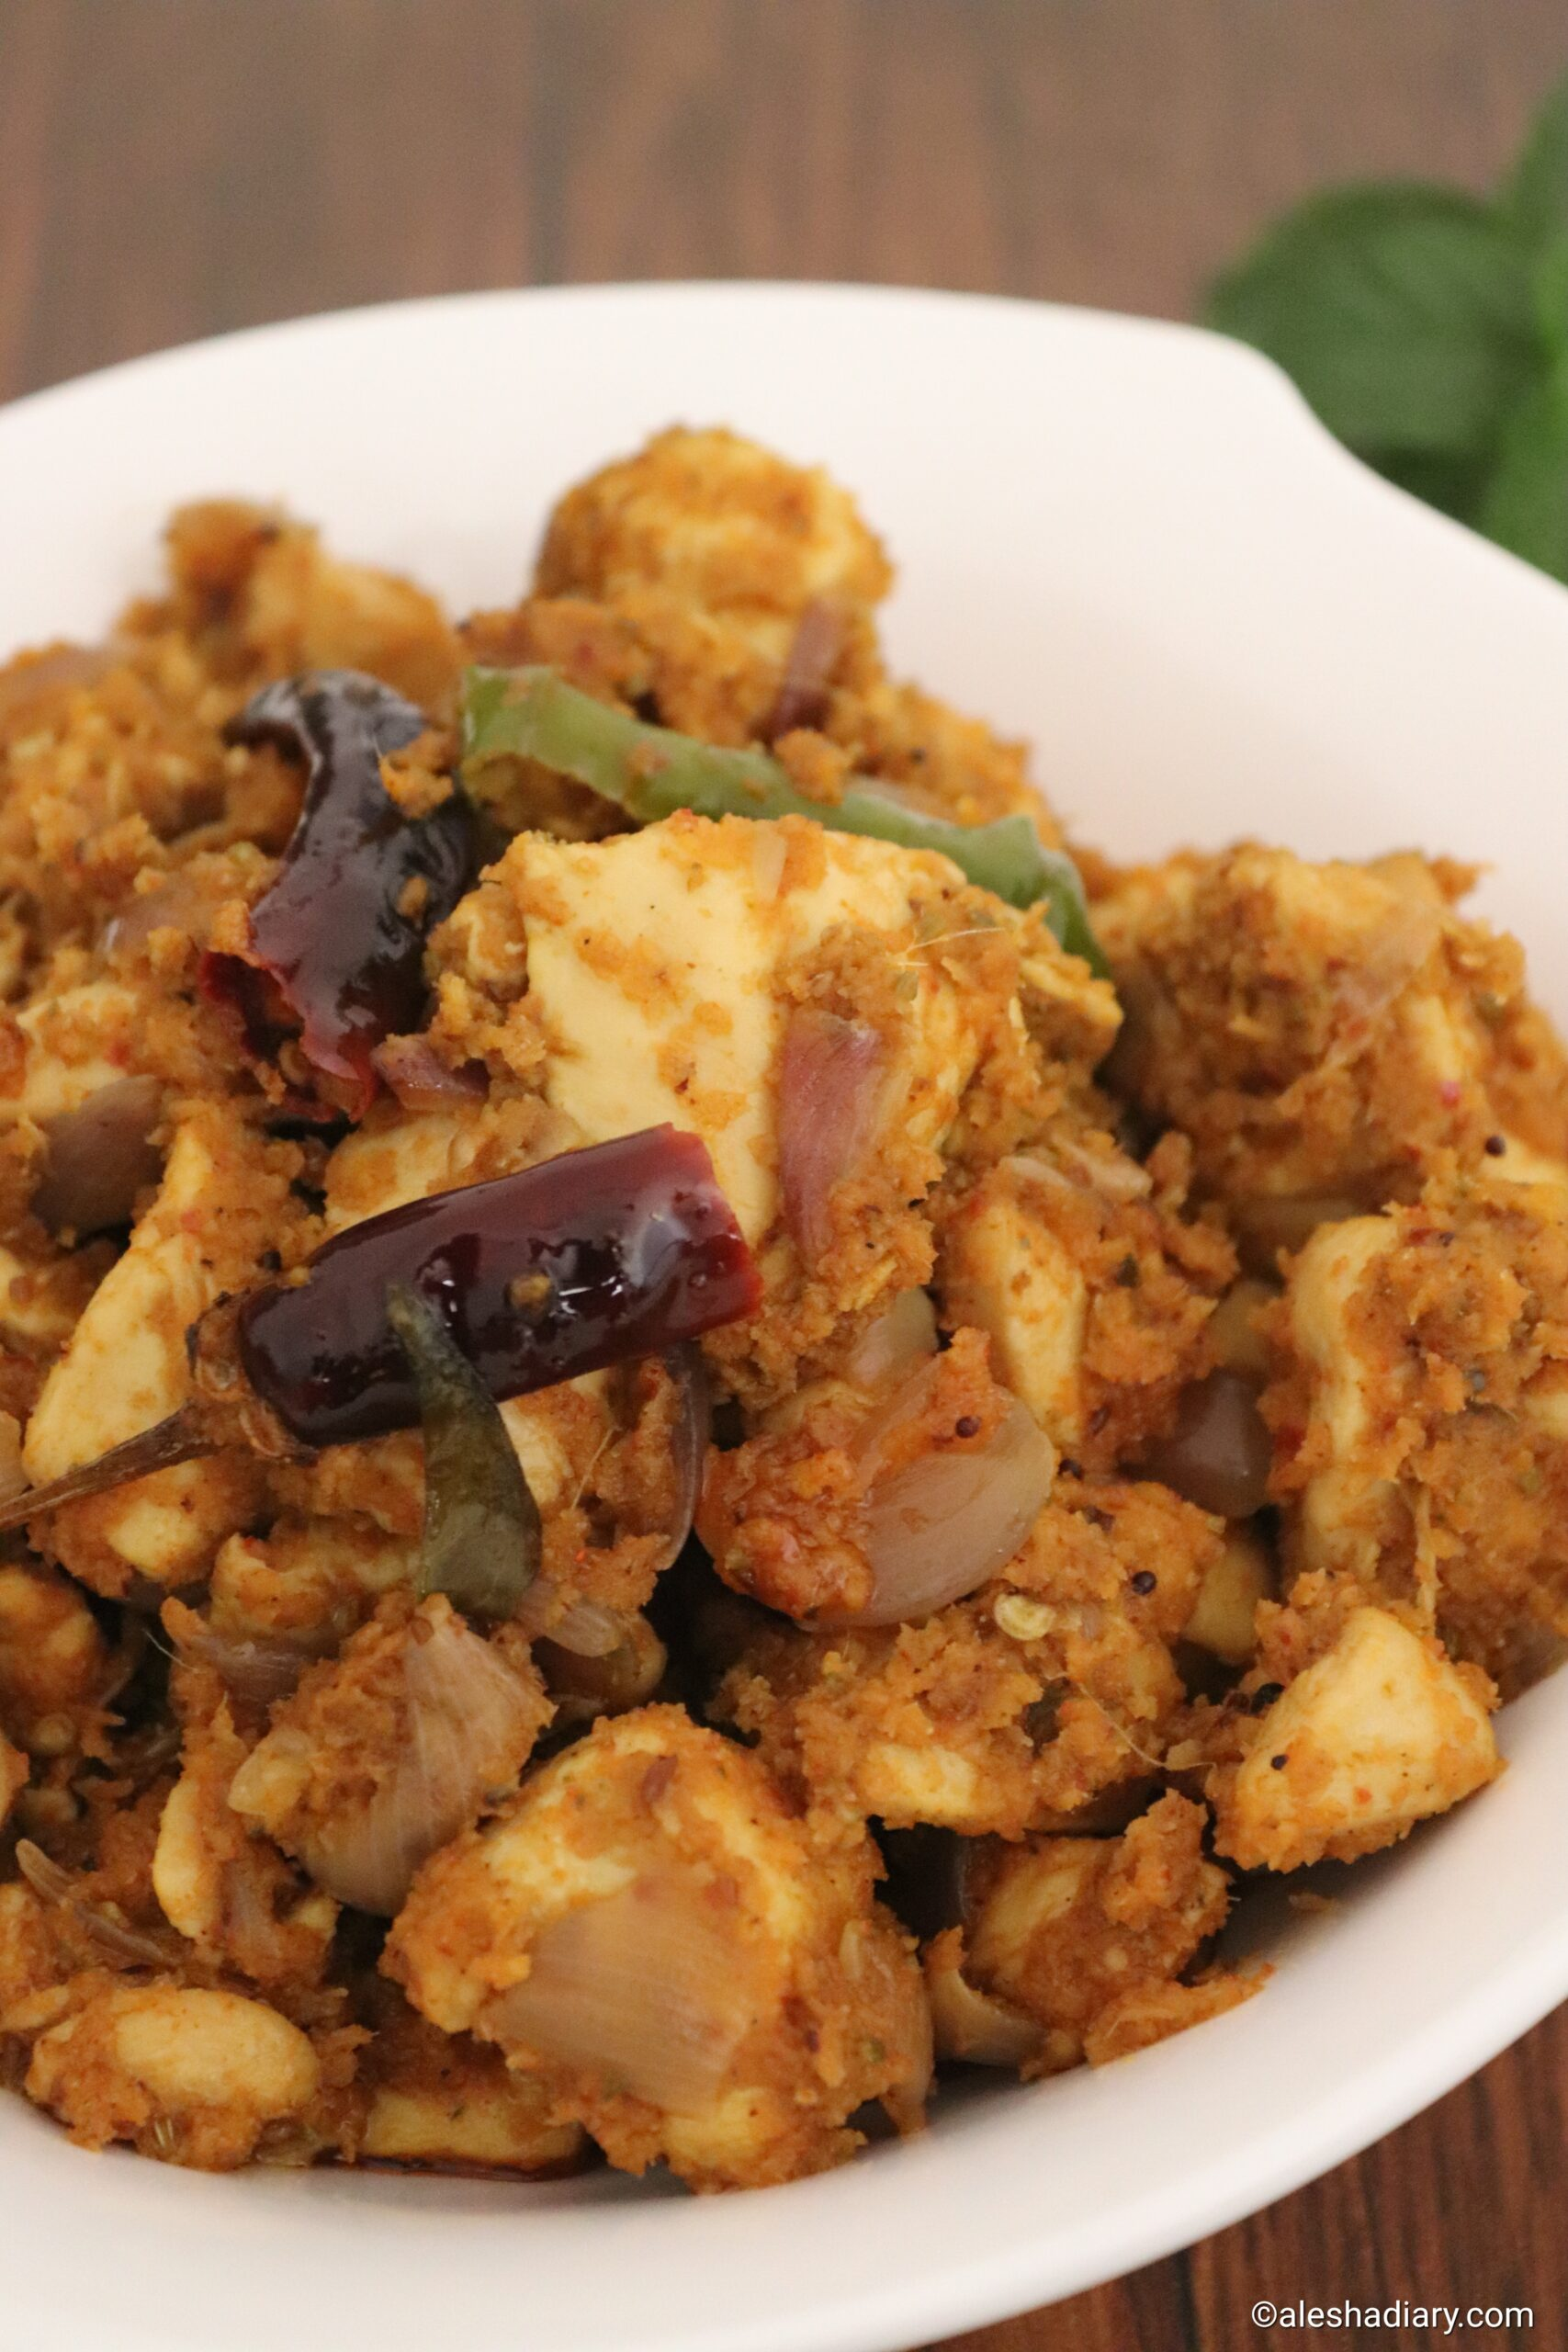 Chicken thoran – Chicken coconut stir fry